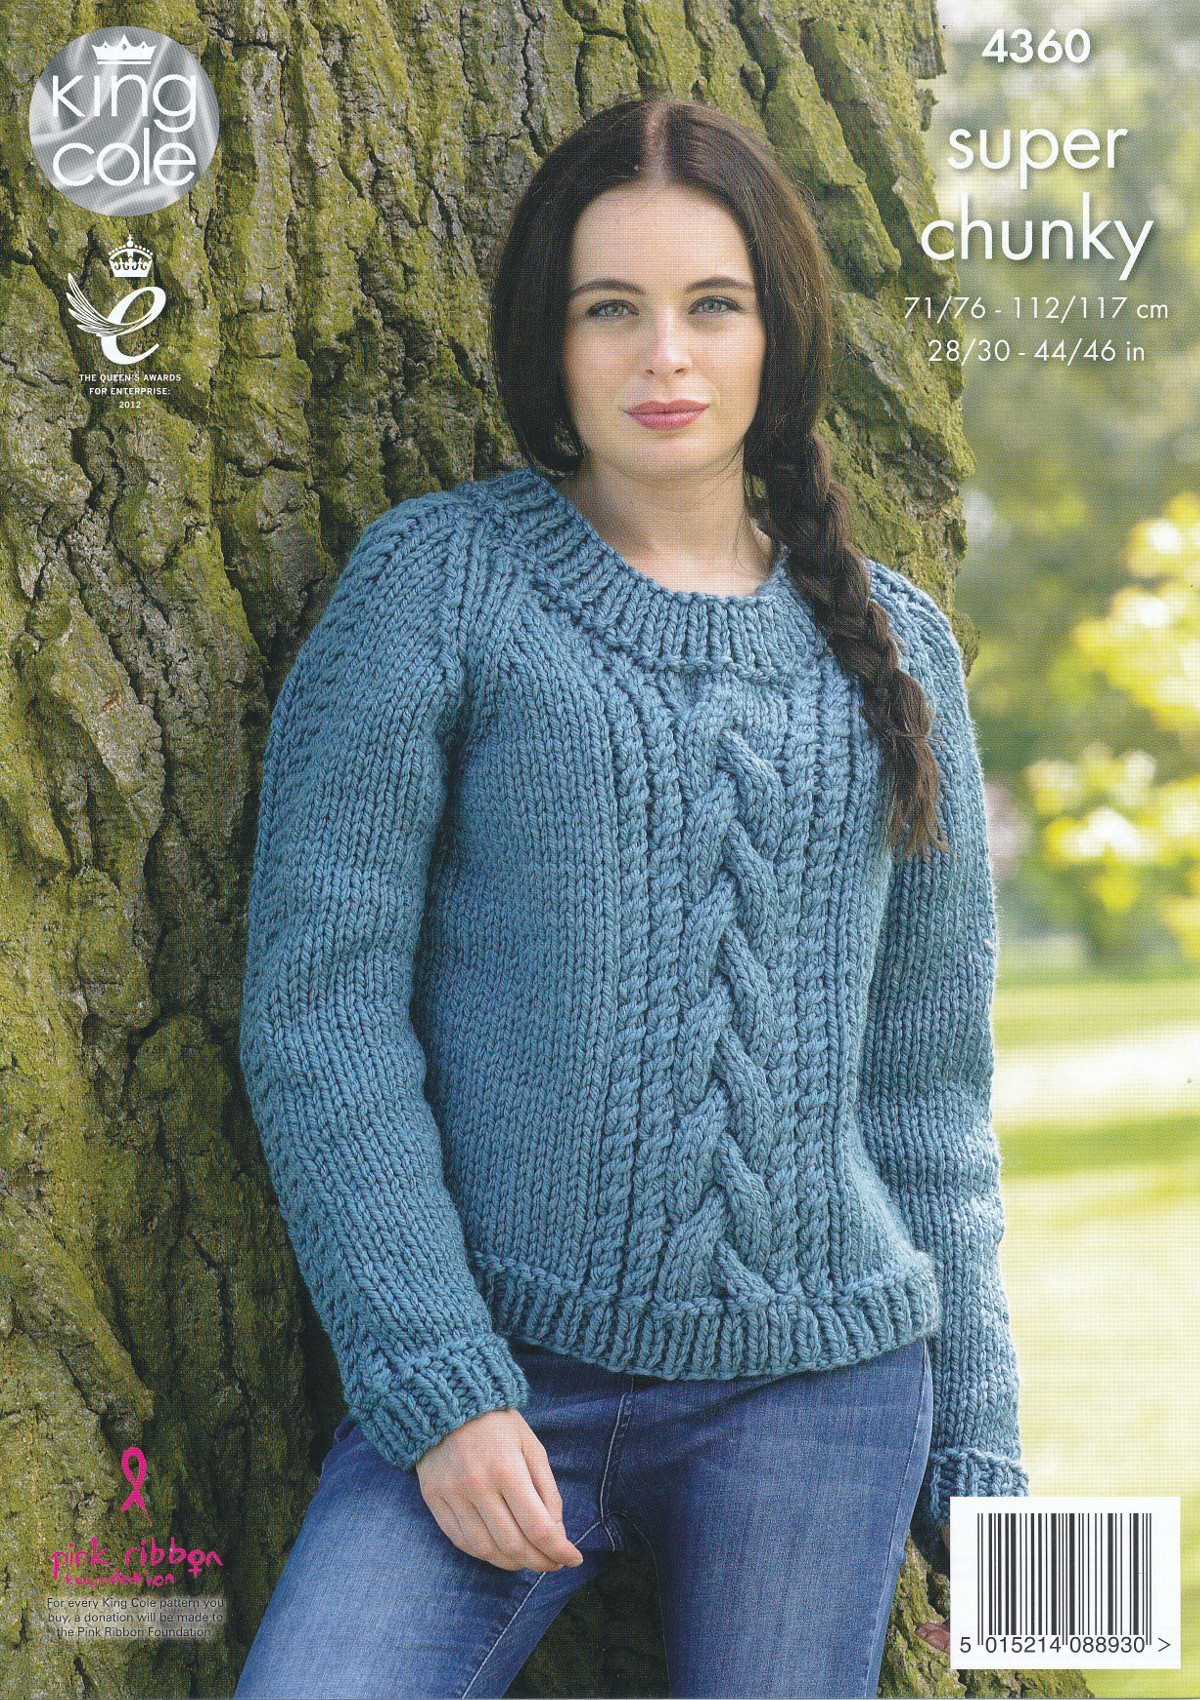 Elegant La S Super Chunky Knitting Pattern King Cole Cable Knit Cable Knit Sweater Pattern Of Fresh Zip Front Cardigan Knit Pattern Bronze Cardigan Cable Knit Sweater Pattern